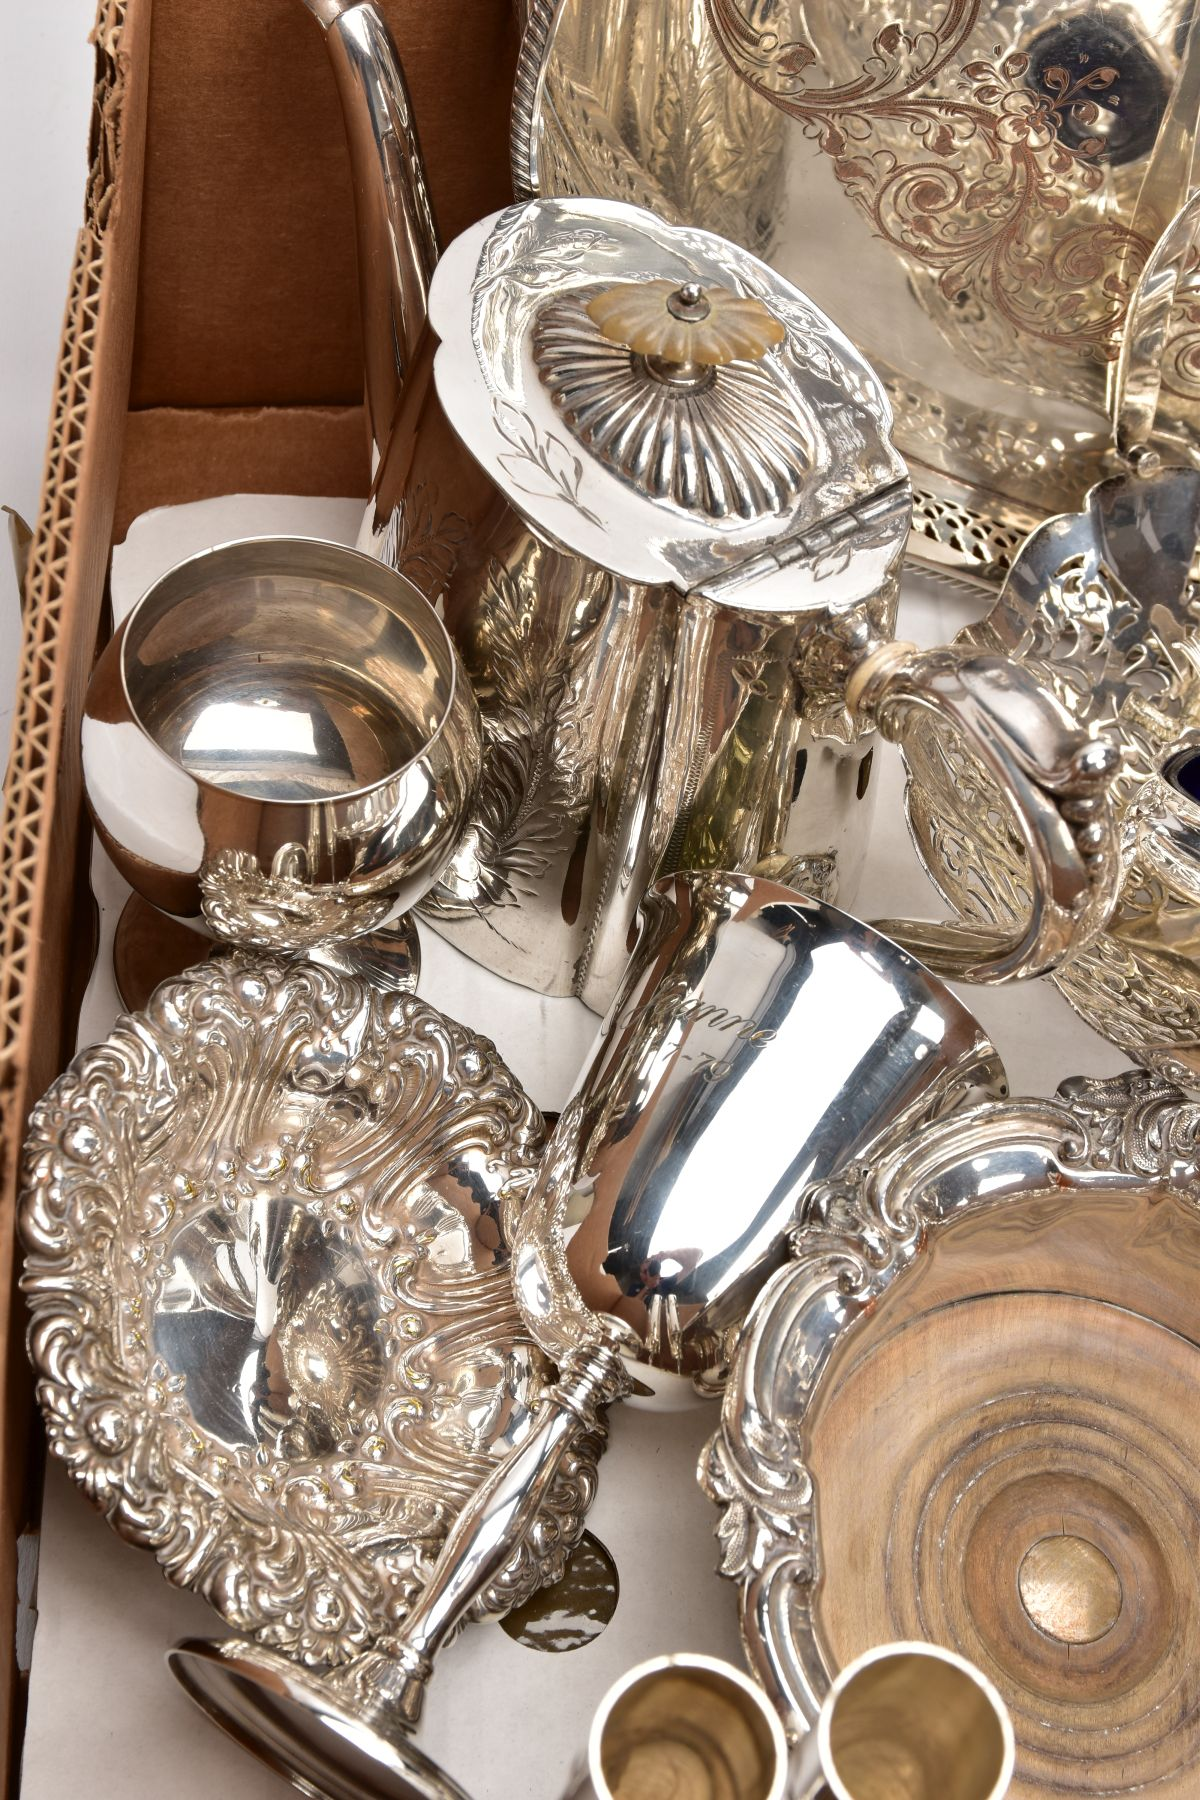 A BOX CONTAINING A QUANTITY OF SILVER PLATED ITEMS, to include a teapot and coffeepot with stand, - Image 3 of 7